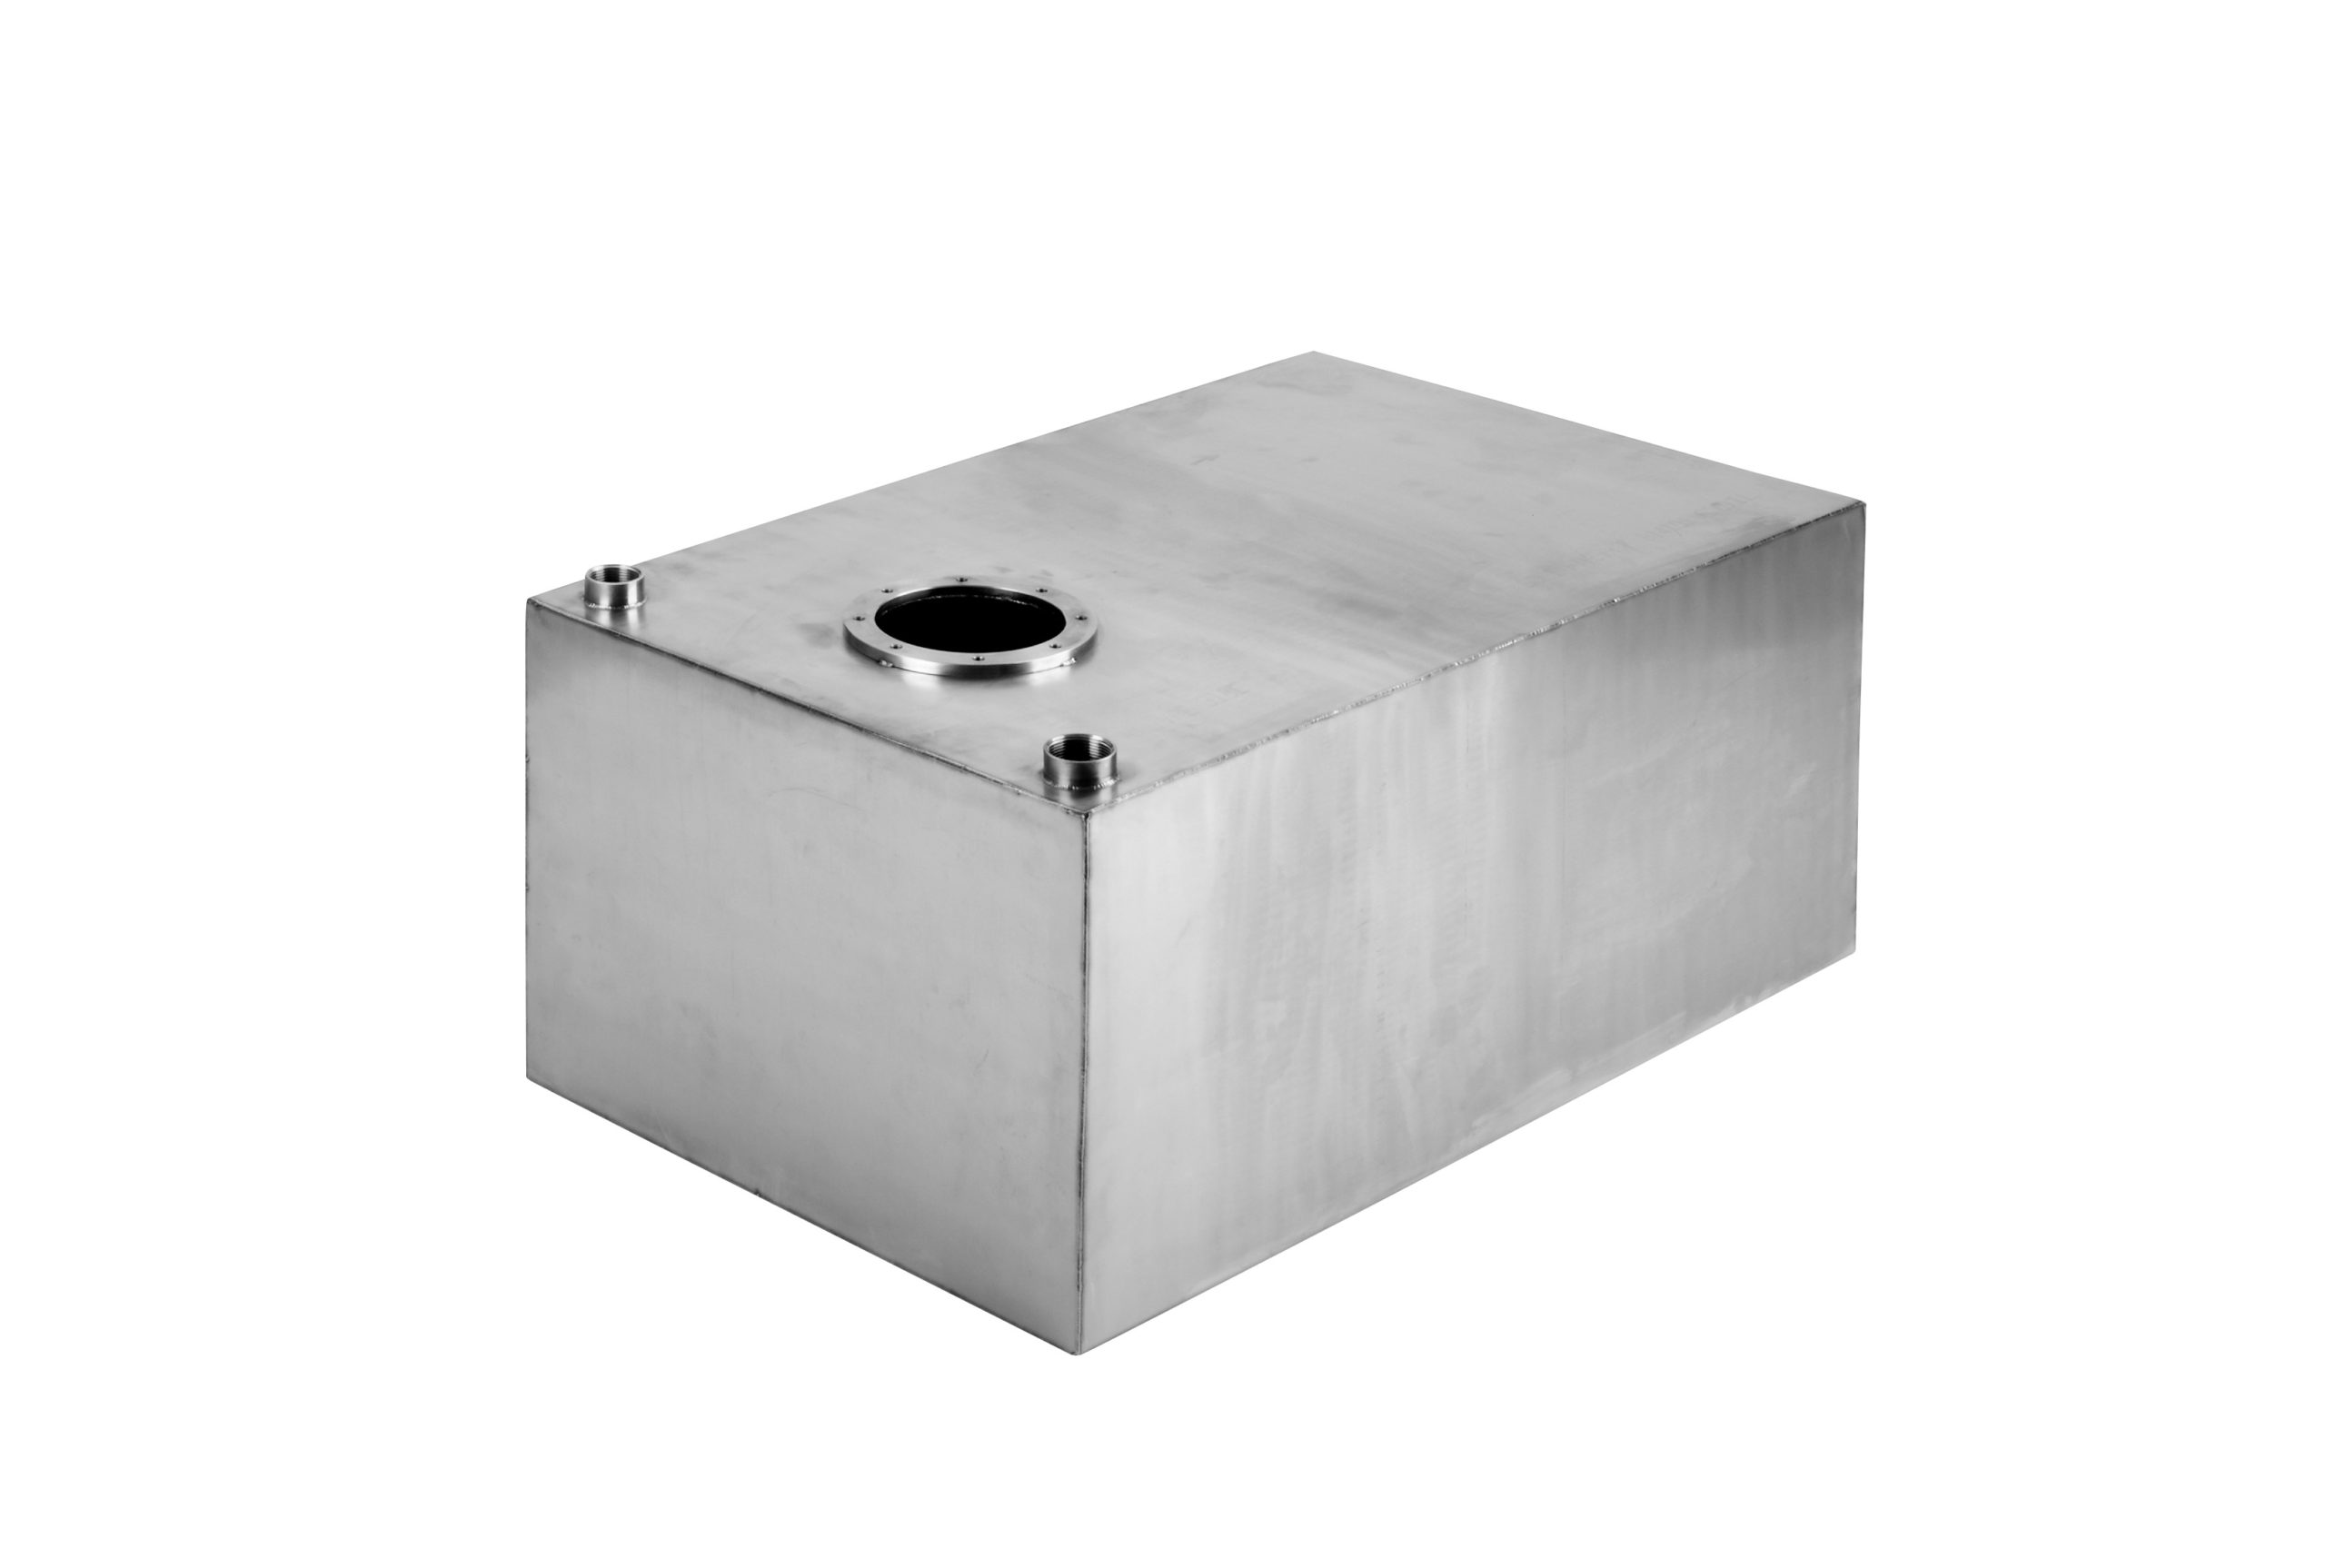 240 Litre Fuel Tank - Stainless Steel or Aluminium